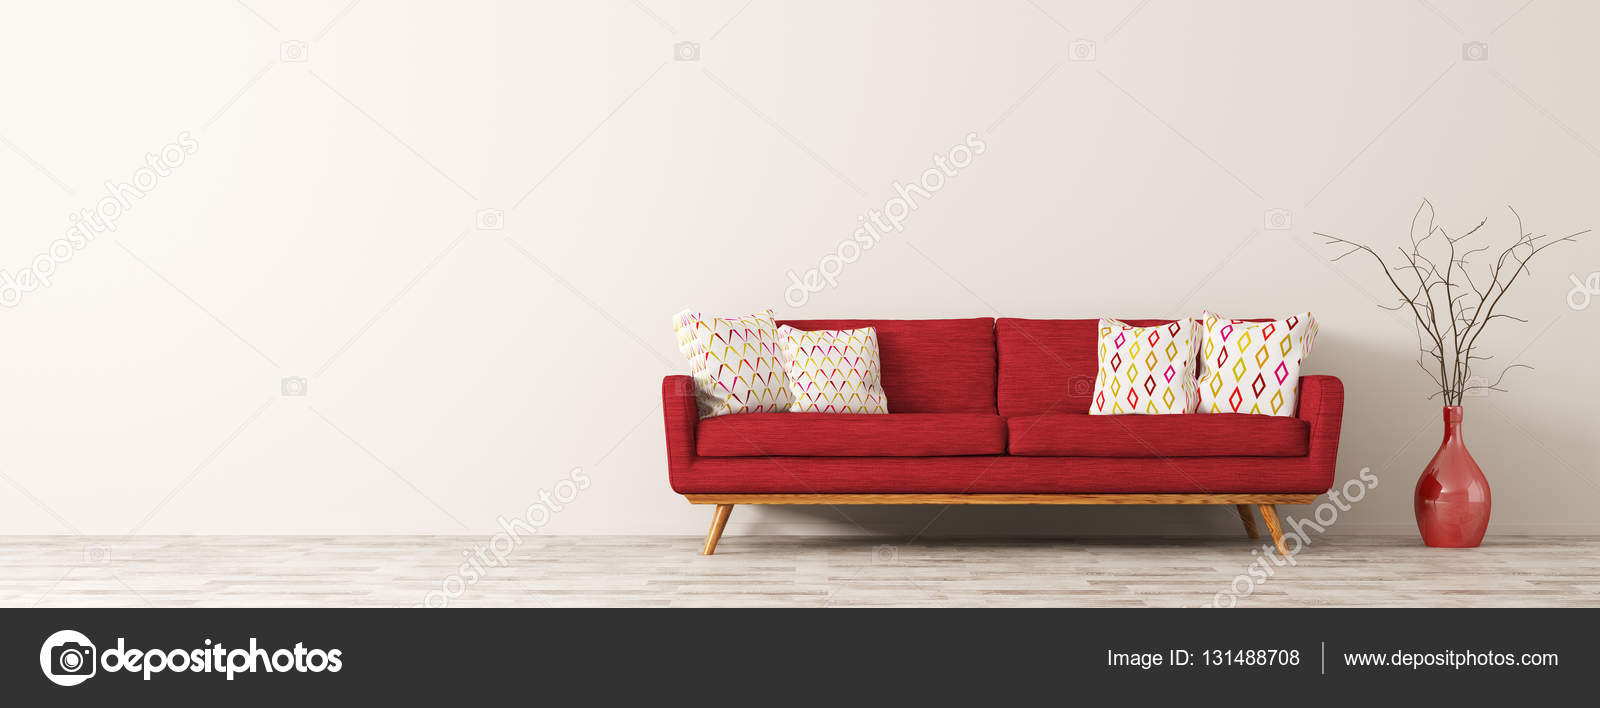 red sofa white living room woodwork ideas modern interior of with 3d render stock photo cushions and vase branch panorama rendering by scovad